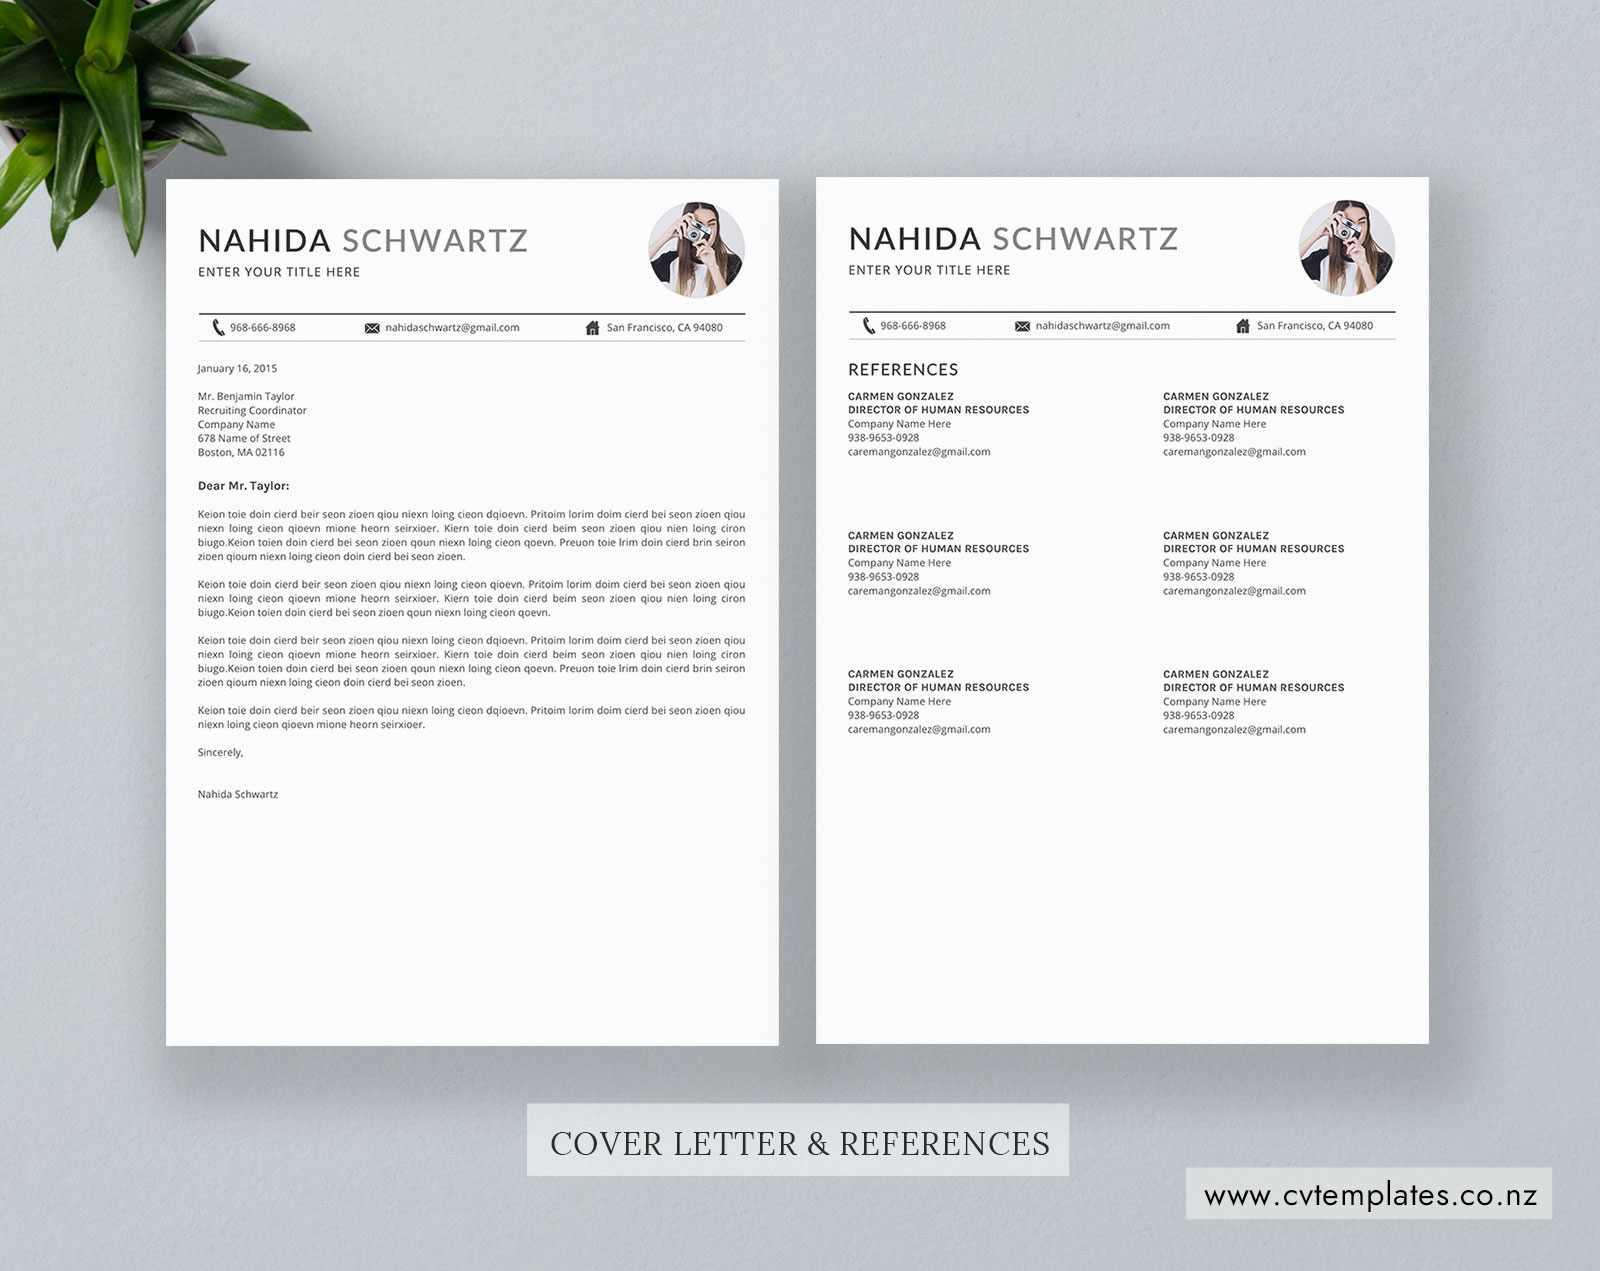 simple resume references format template vtemplates new zealand cv coverletterreferences Resume Resume References Template Download